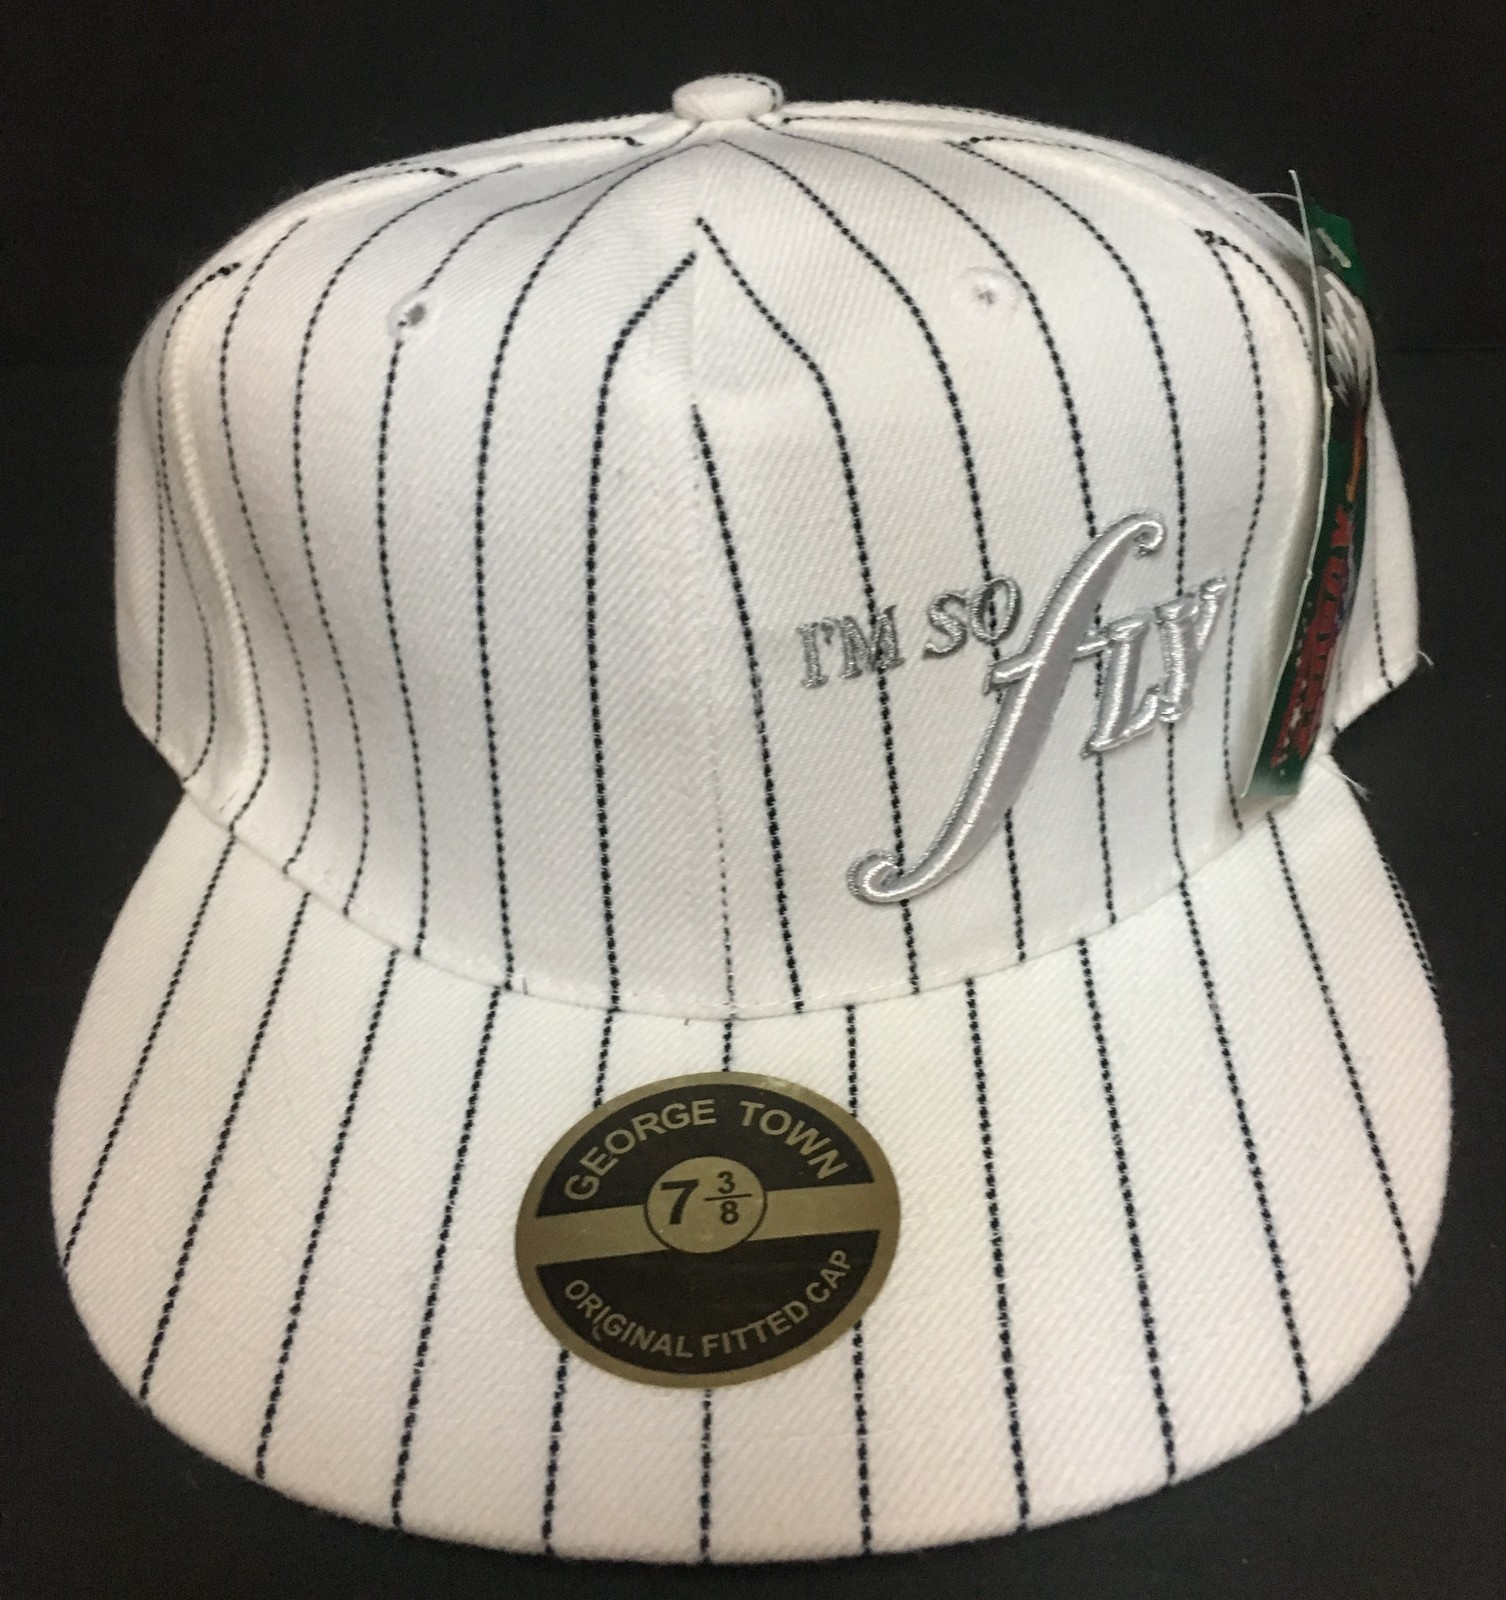 I'M SO FLY Authentic August Sportswear Hat Sz 7 3/8